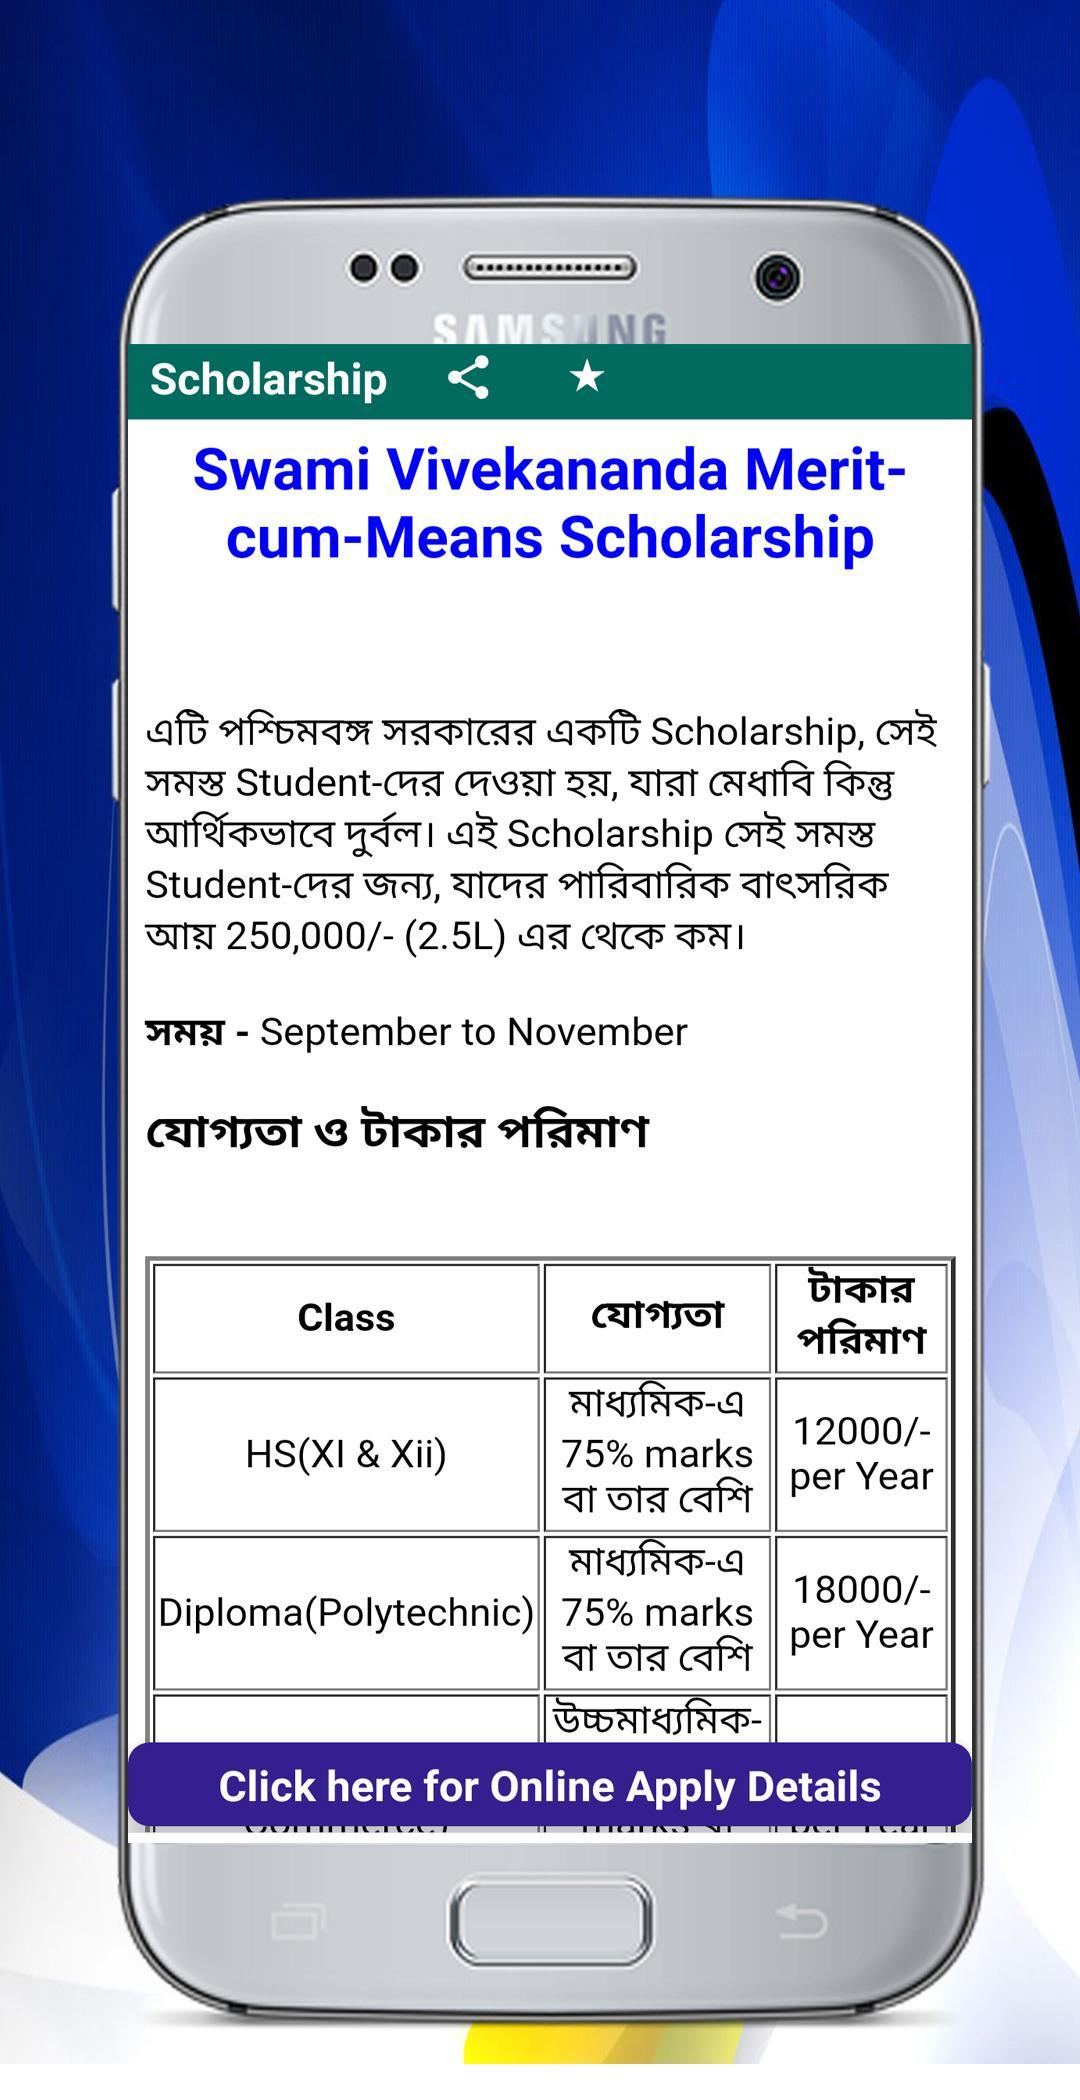 WB Scholarship and ST/SC/OBC Caste Certificate for Android